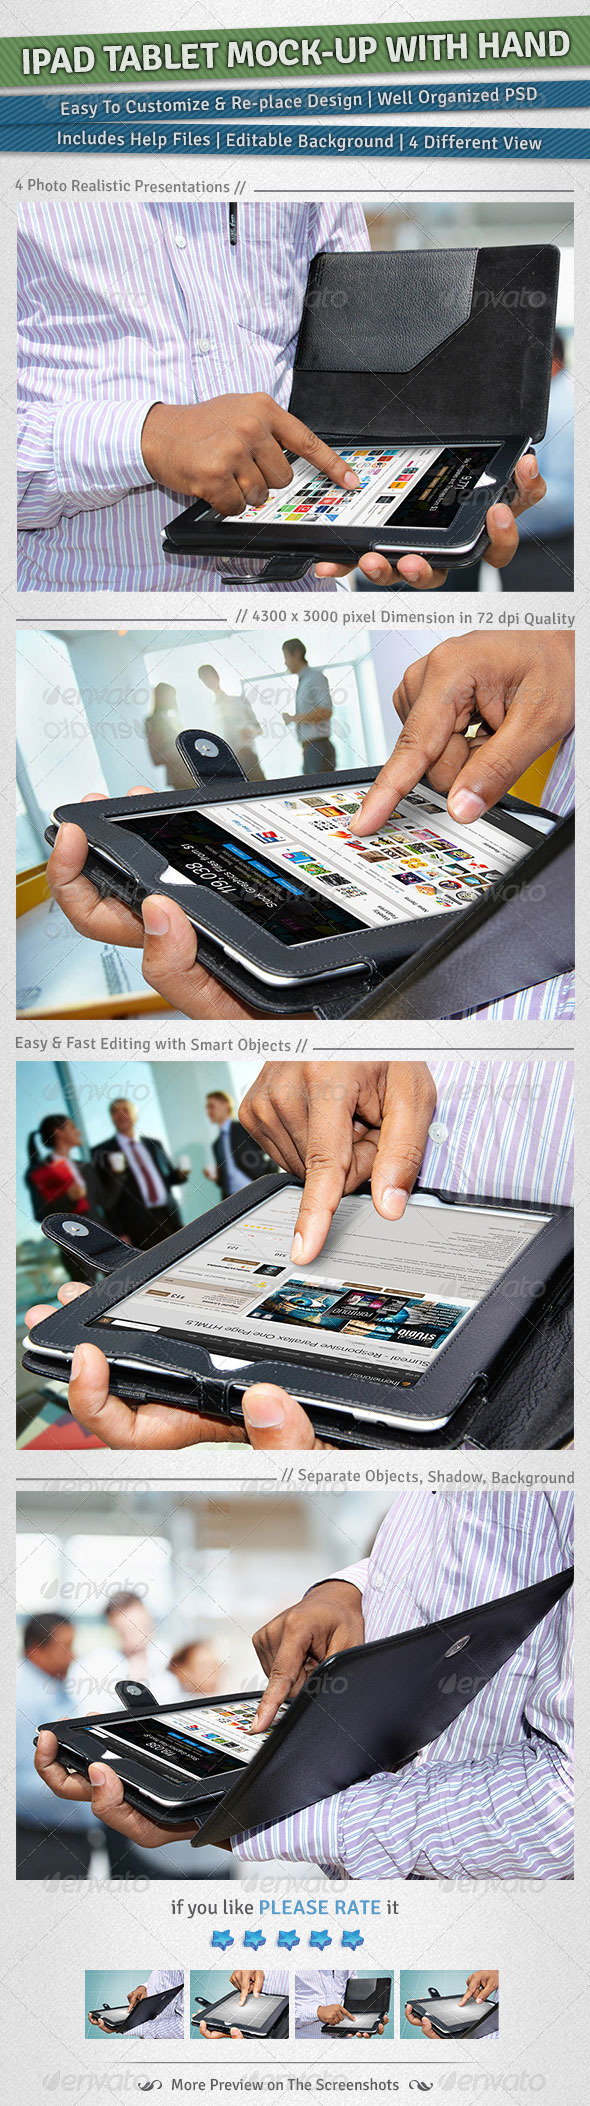 iPad Tablet Mock-up with Hand